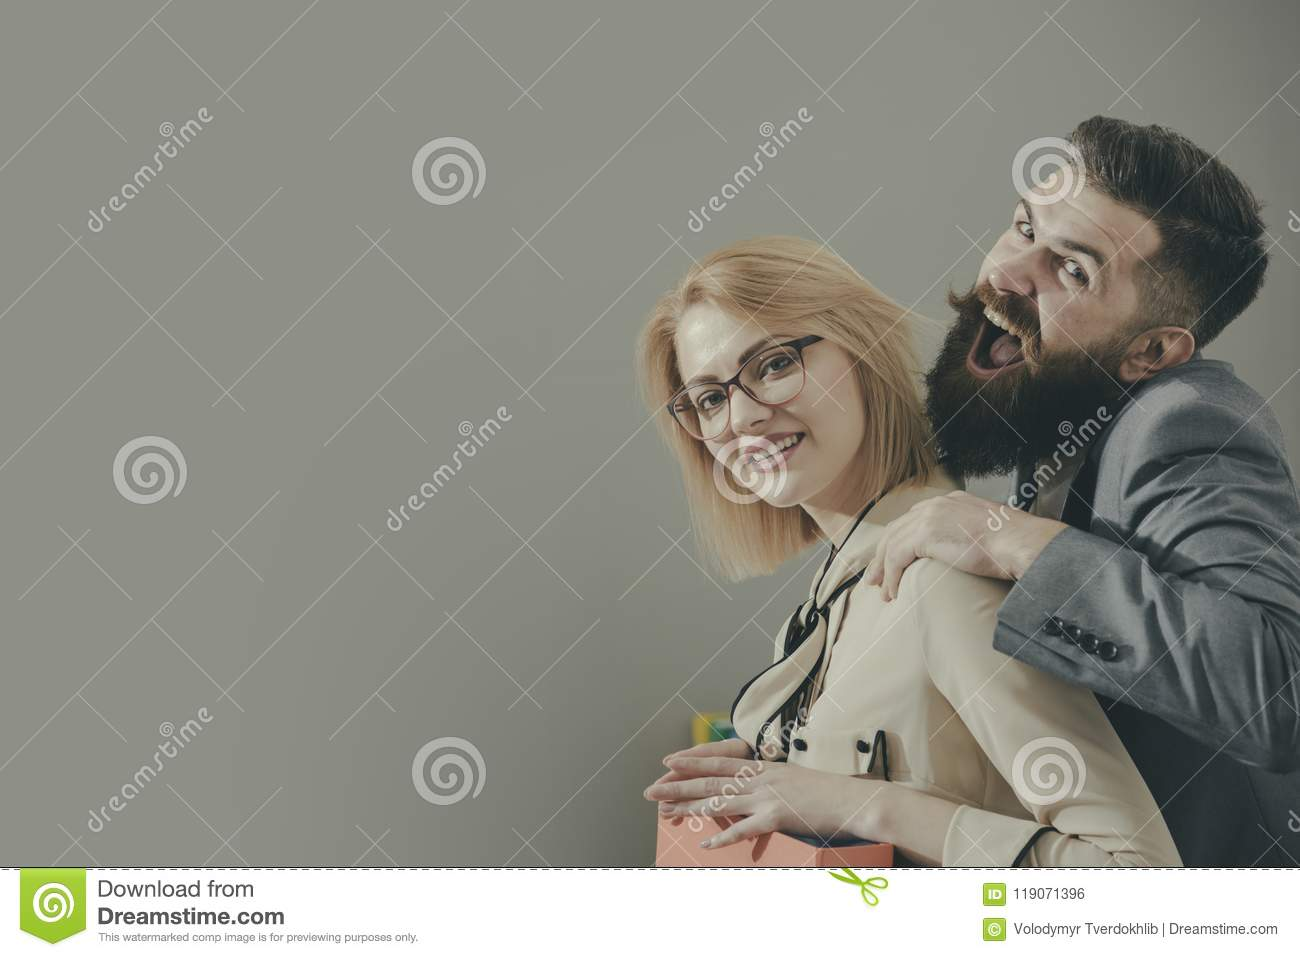 Man touching female coworker on shoulder in inappropriate way in office, copy space